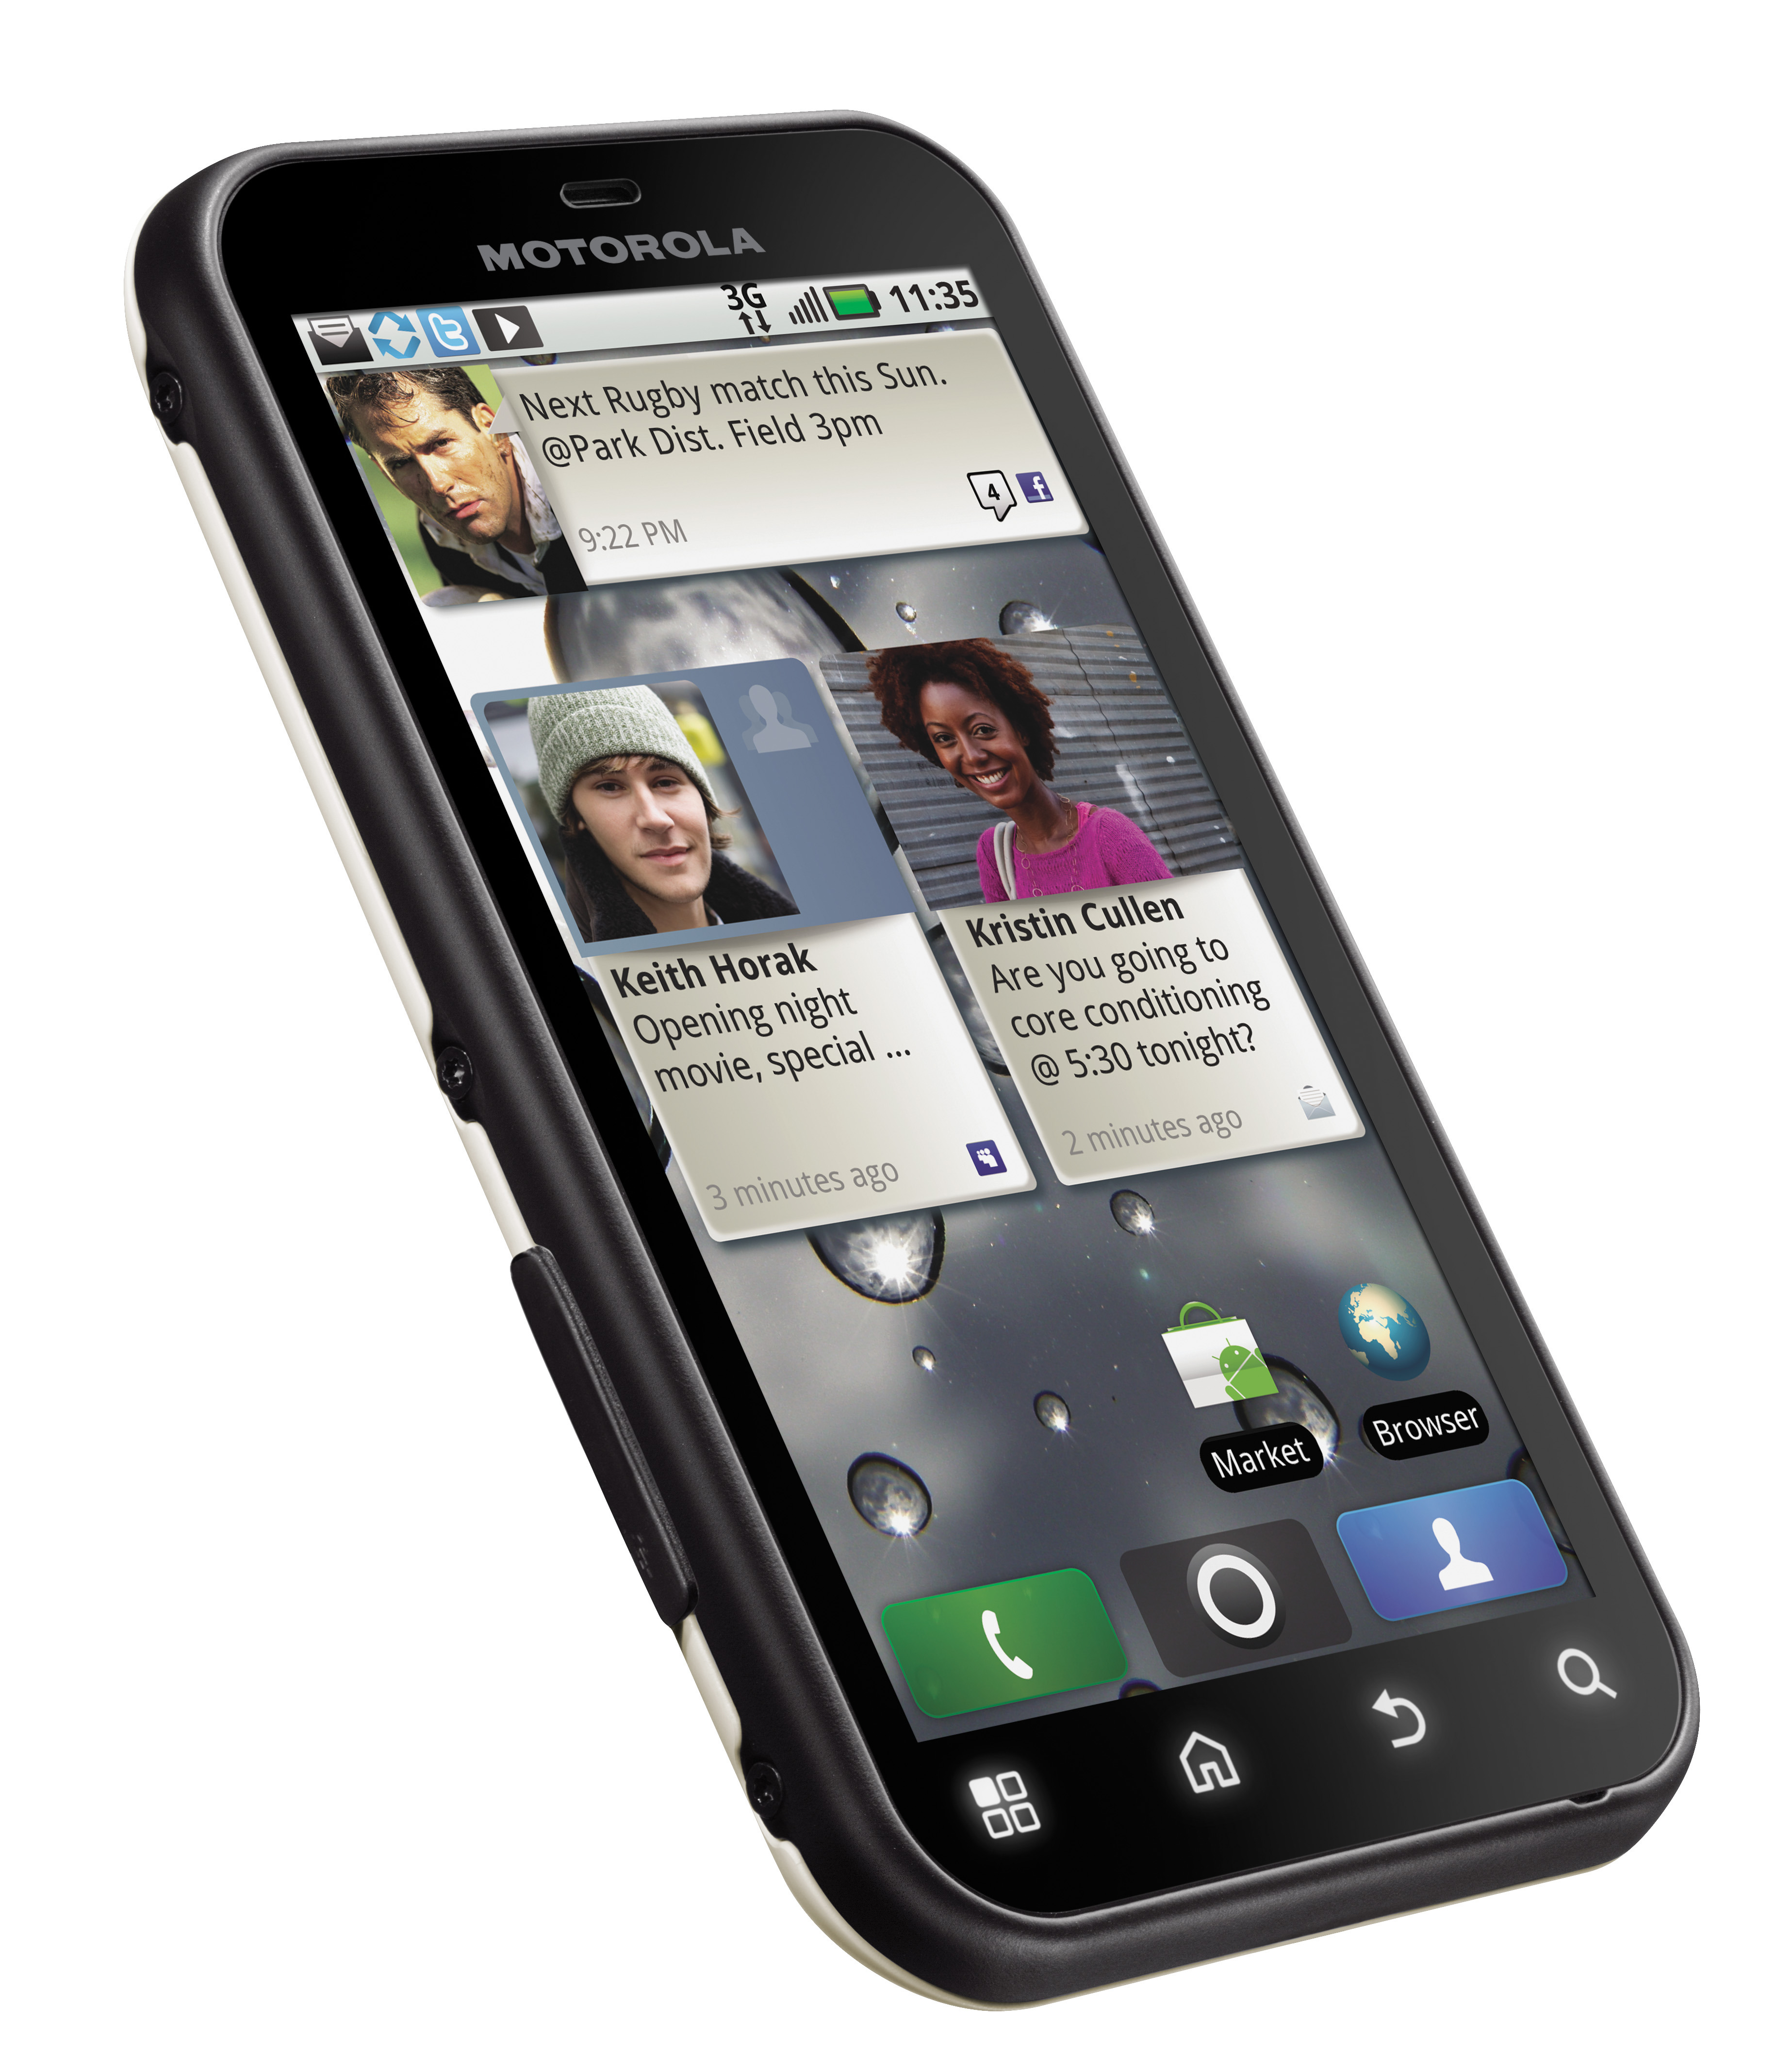 Motorola Defy for T-Mobile